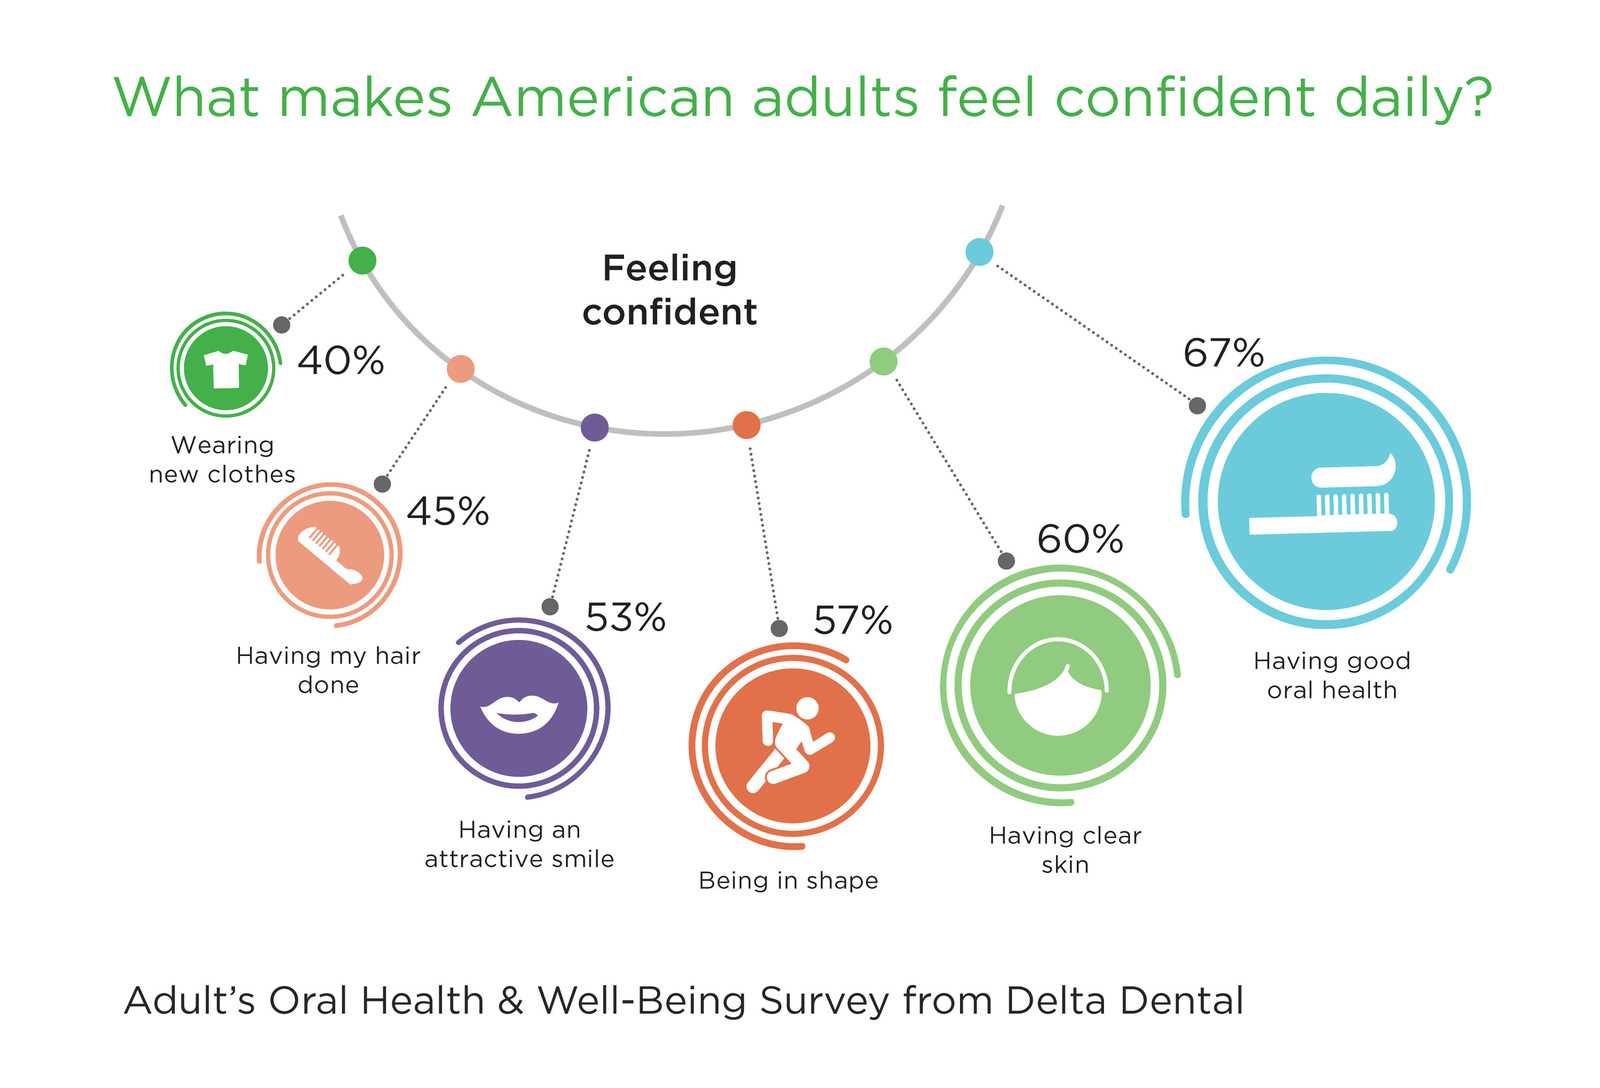 National Survey Good Oral Health Outperforms Clear Skin For Makin